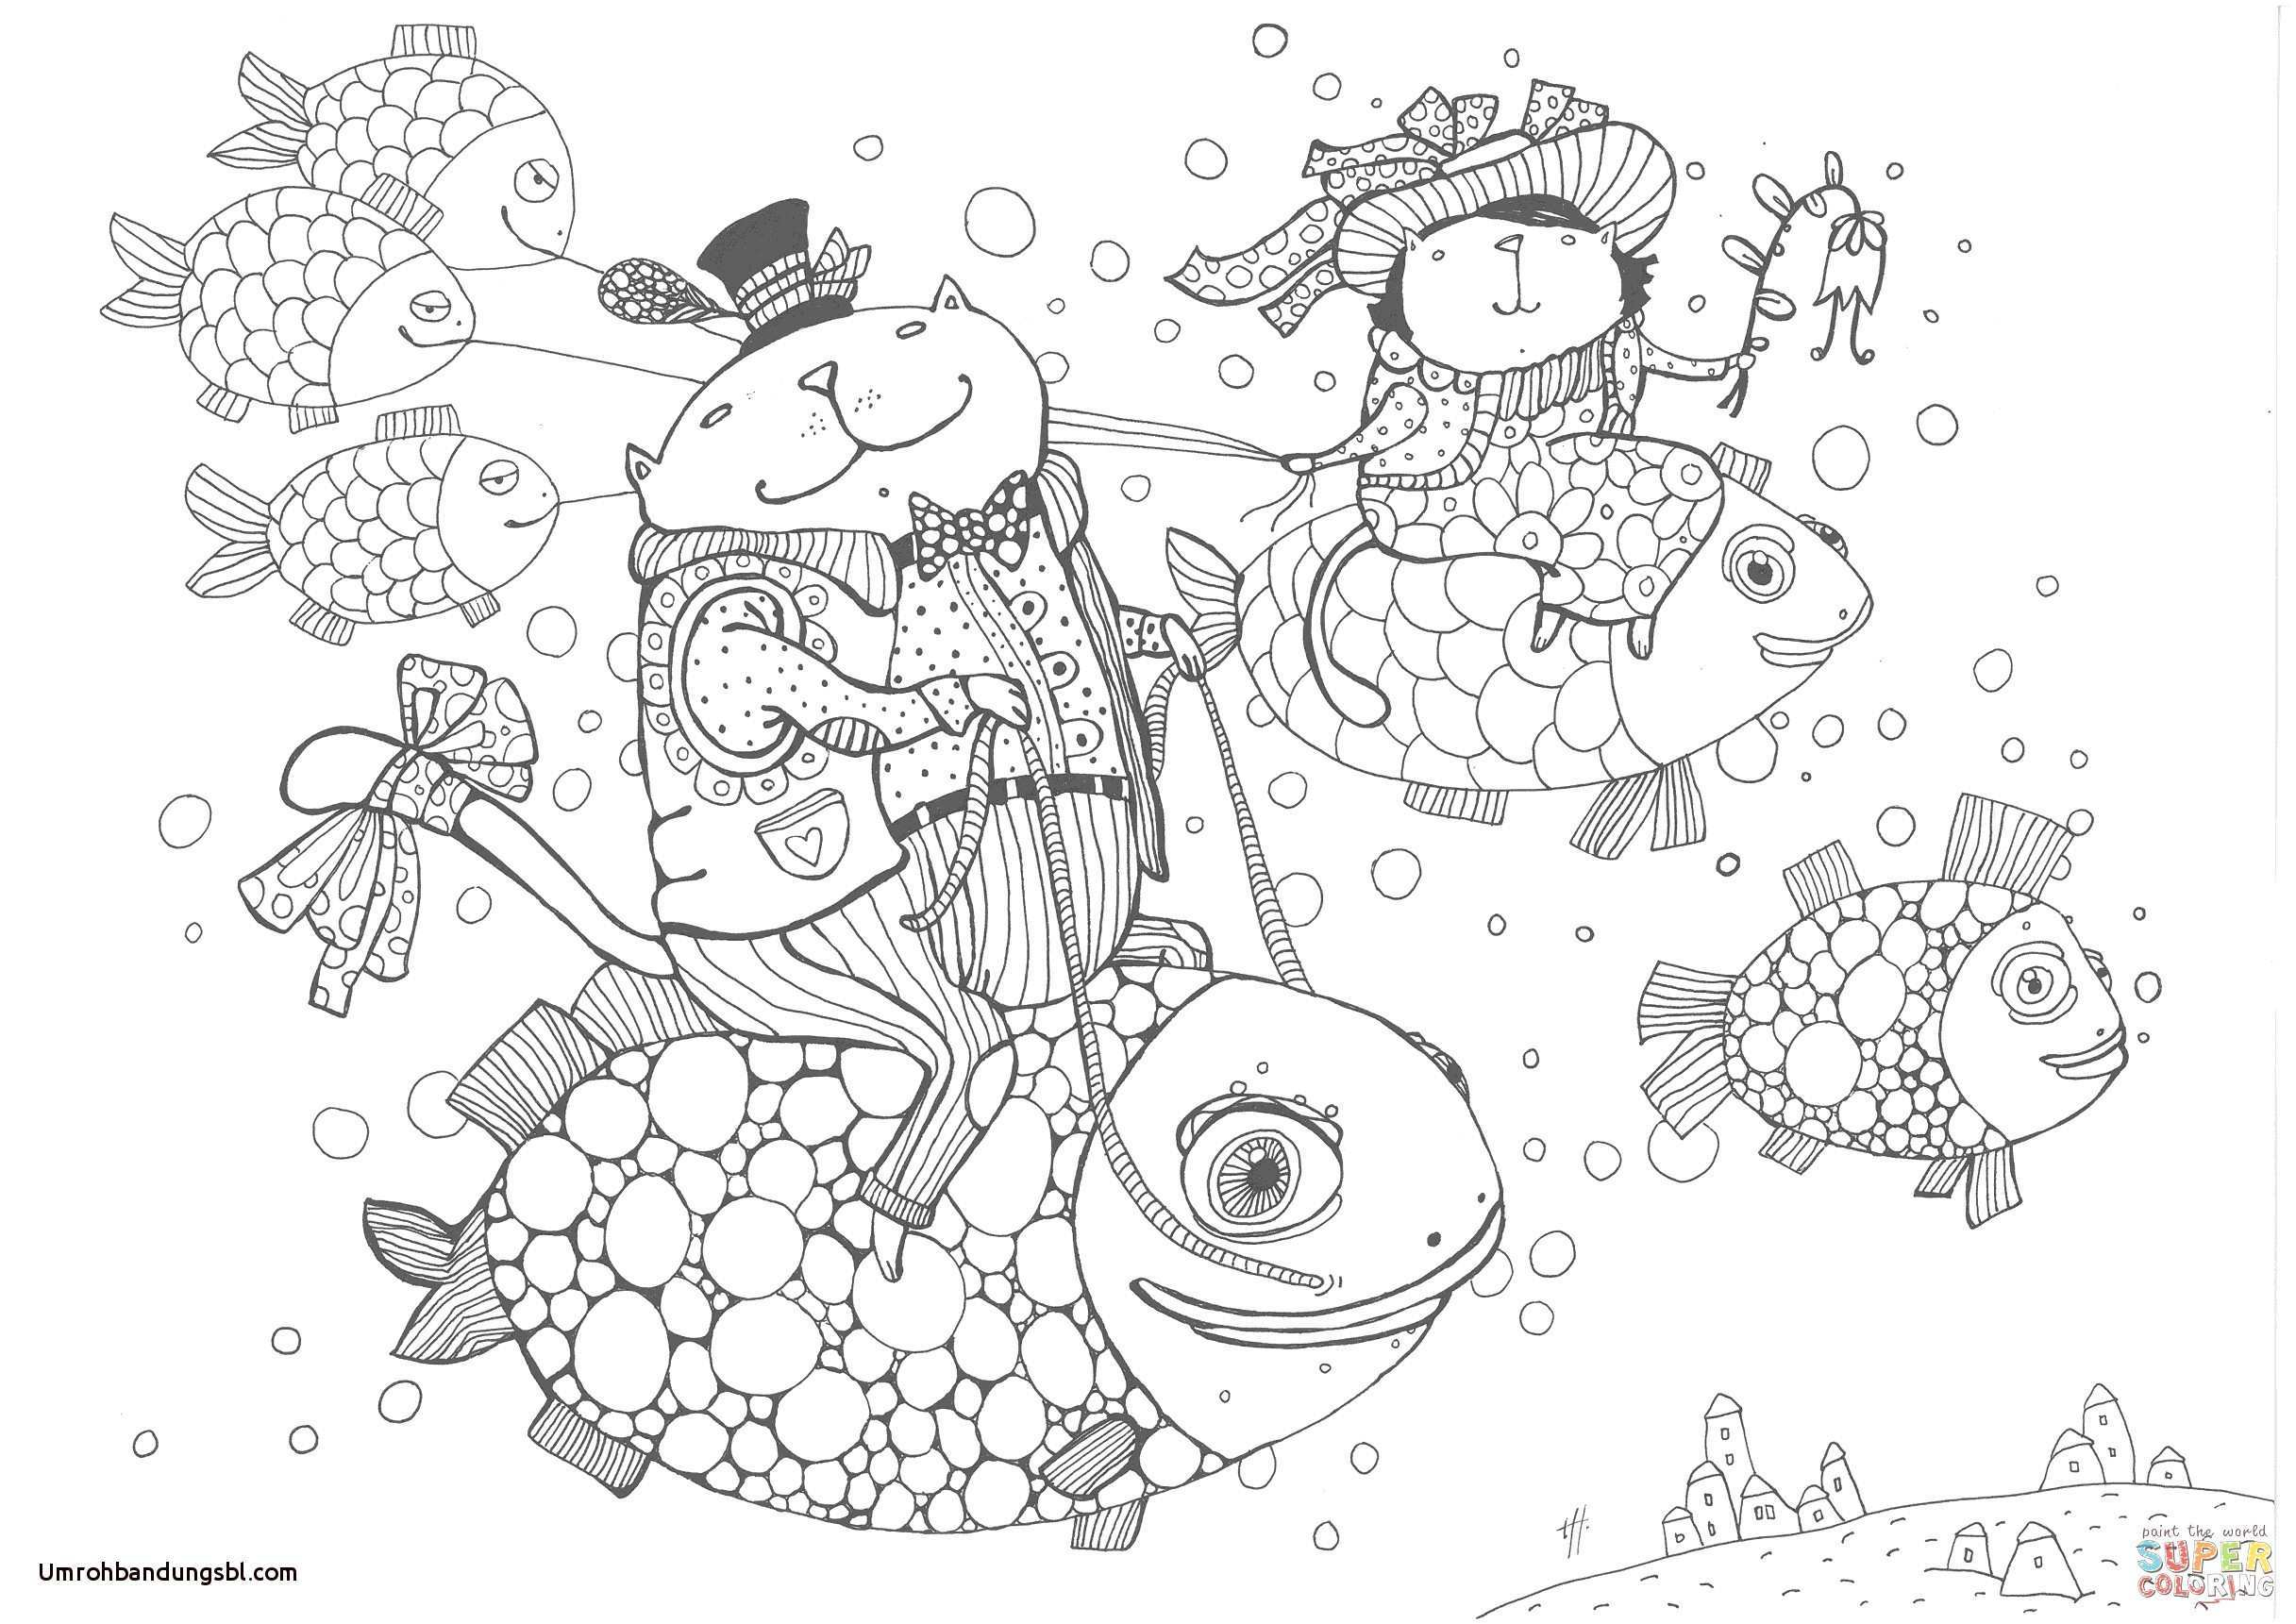 Taco Coloring Page Taco Coloring Page Inspirational Die Inside House Coloring Pages